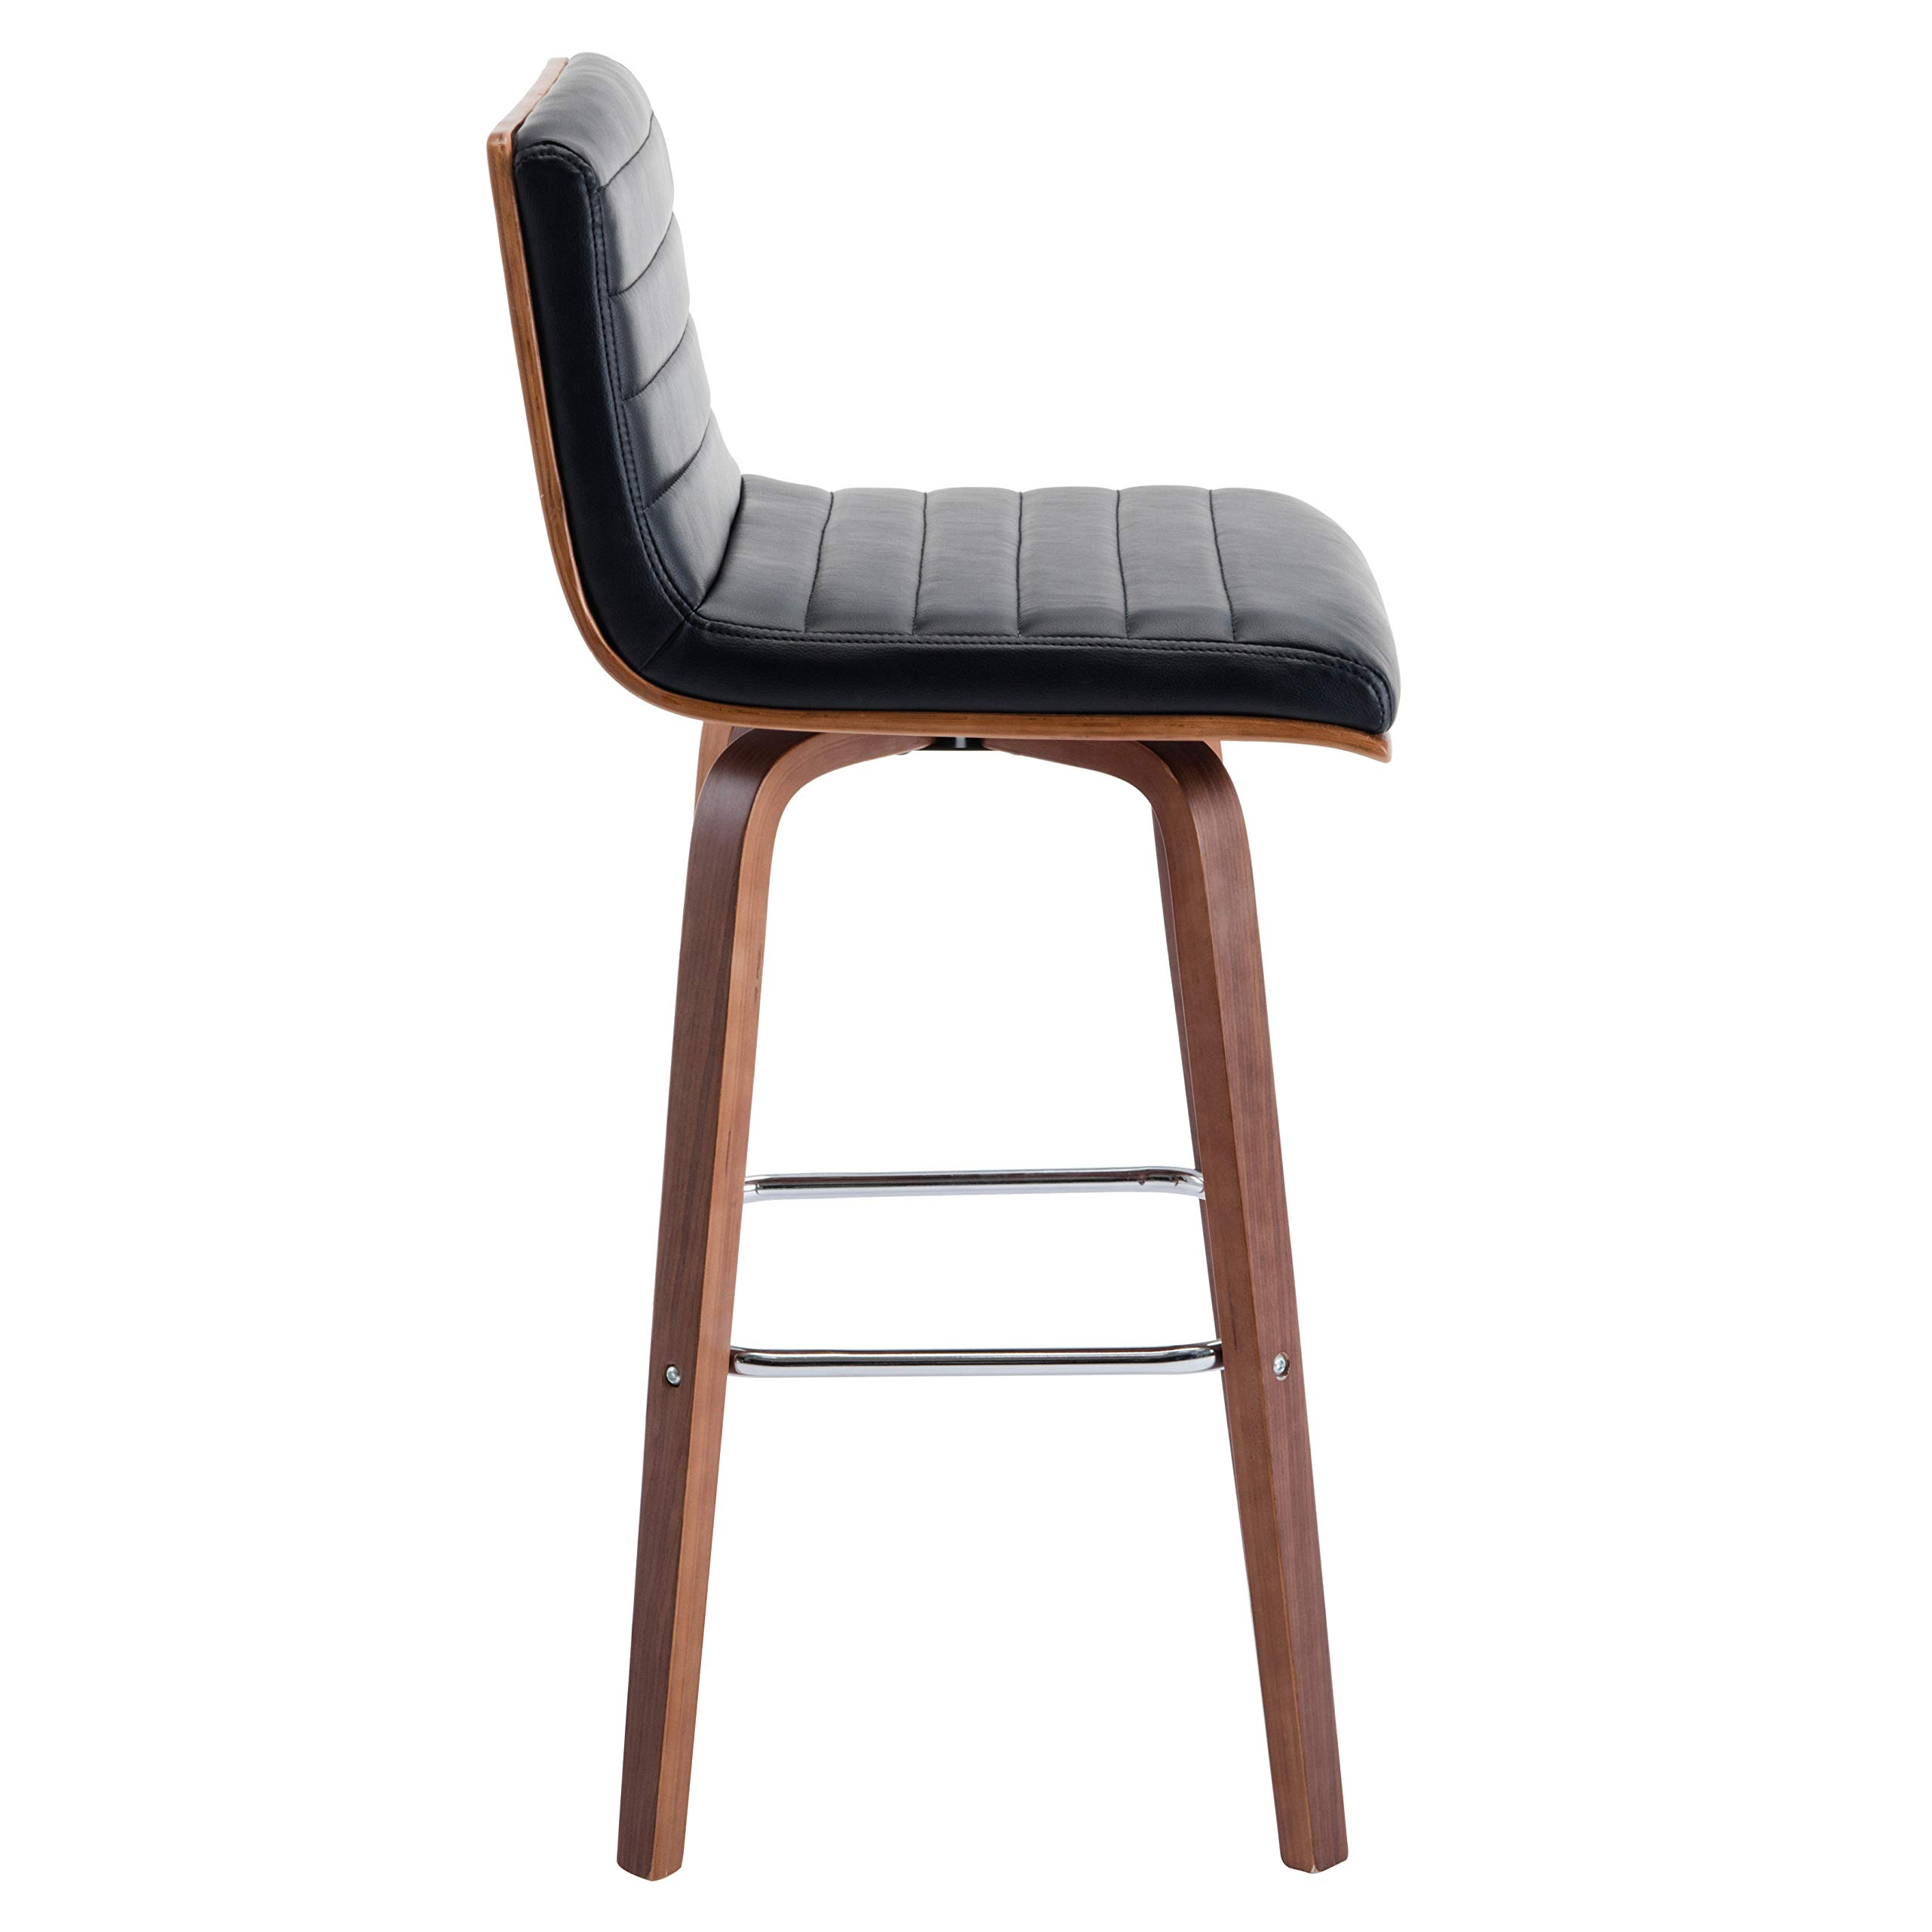 Seat Height 28 Inches Size 39 x 17 x 19 Inches Modern Dining Chairs with Stylish Wood Legs for Practical Sturdy Support Easy Clean PU Leather for Home or Business One Porthos Home TFC053A BLK Grey or Black